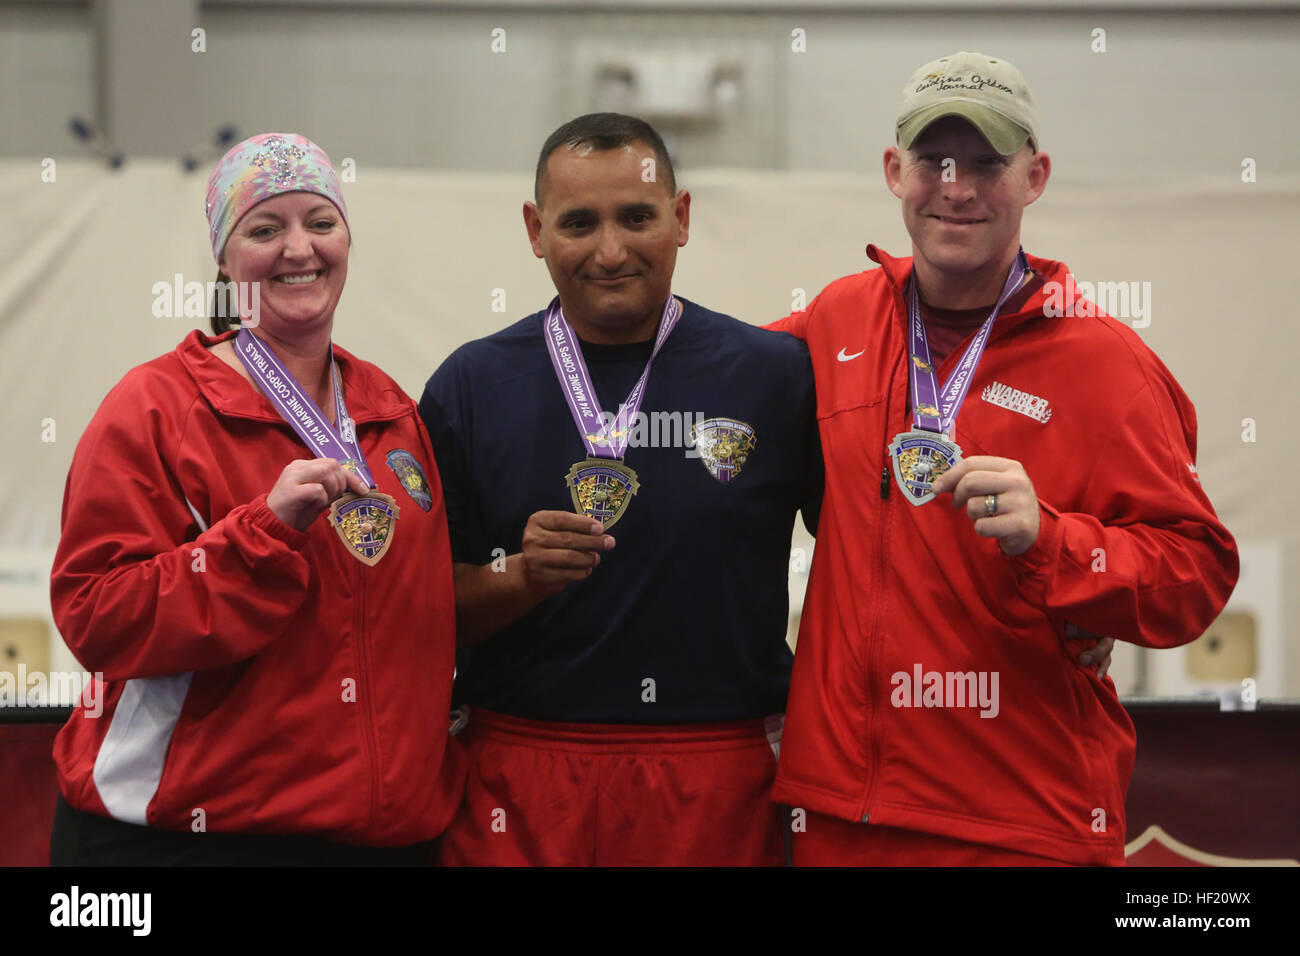 Sgt. Irona Cliver, 33, from Peck, Utah, (left), Gunnery Sgt. John Rojas, 40, from Houston, (center), and Staff Sgt. Stock Photo